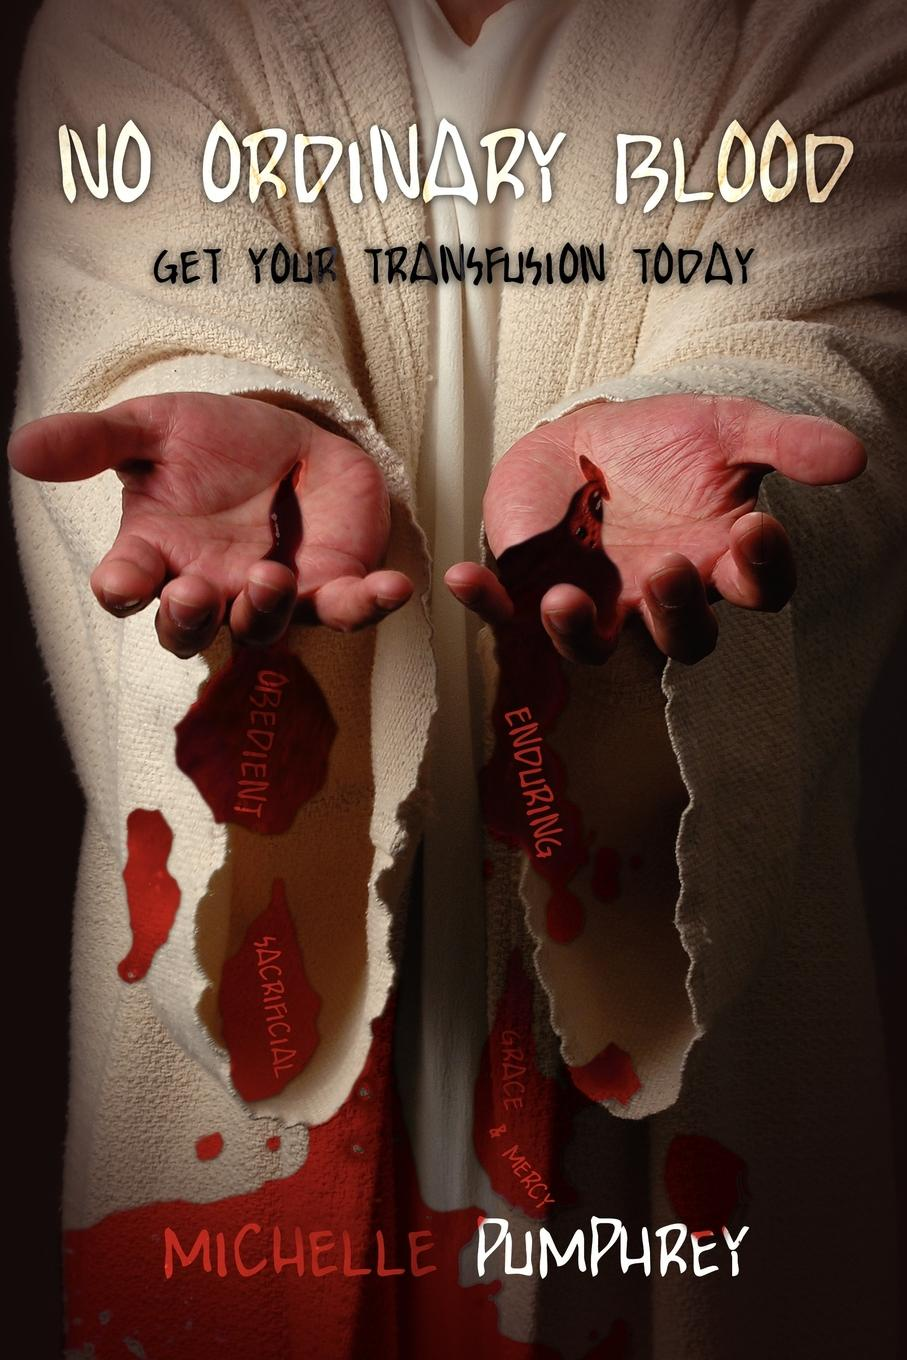 Michelle Pumphrey No Ordinary Blood. Get your Transfusion Today